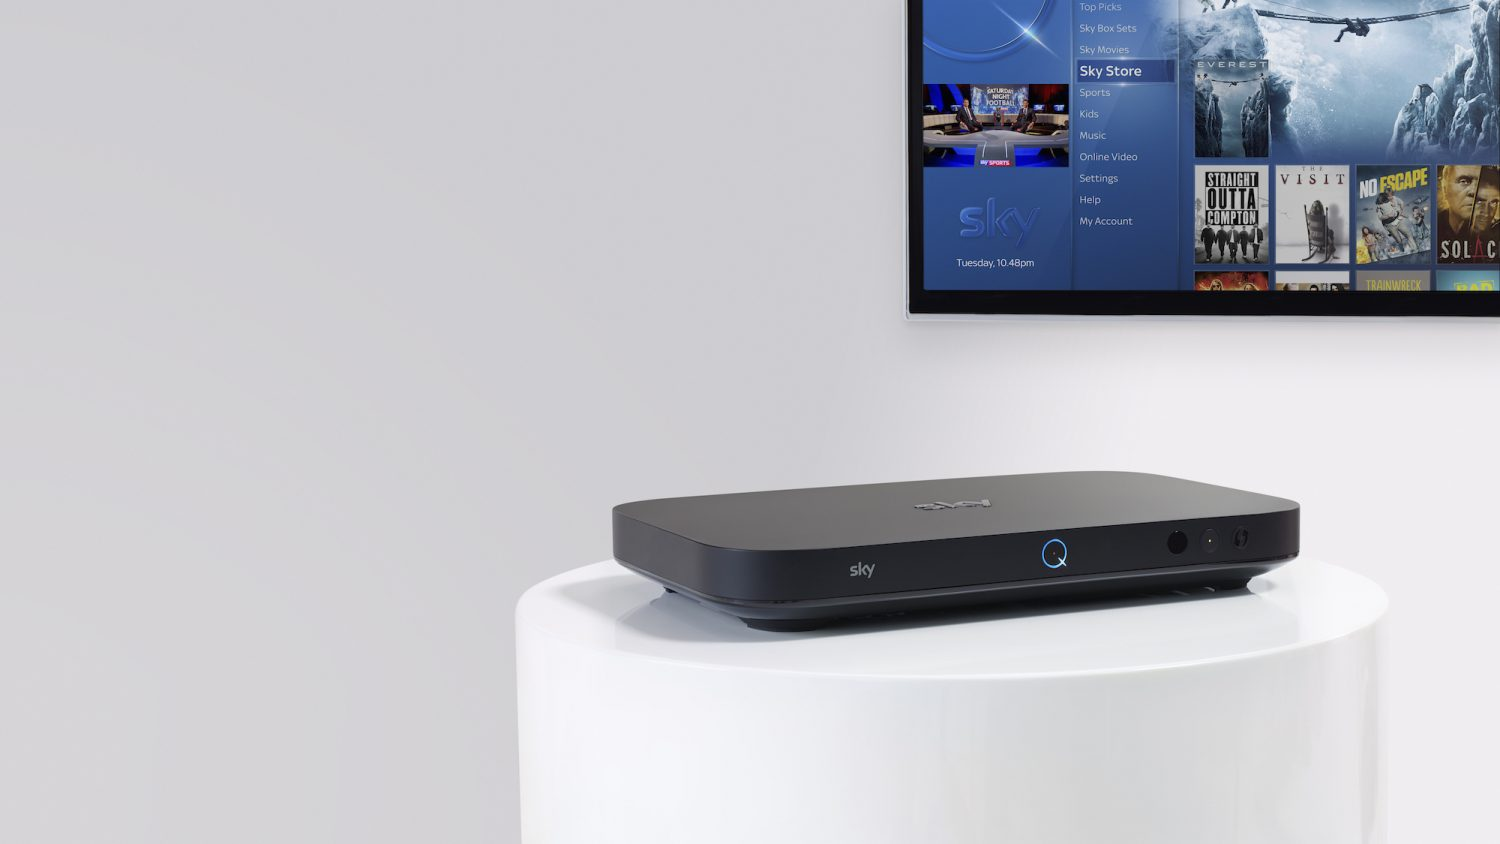 Broader European Rollout for Sky Q